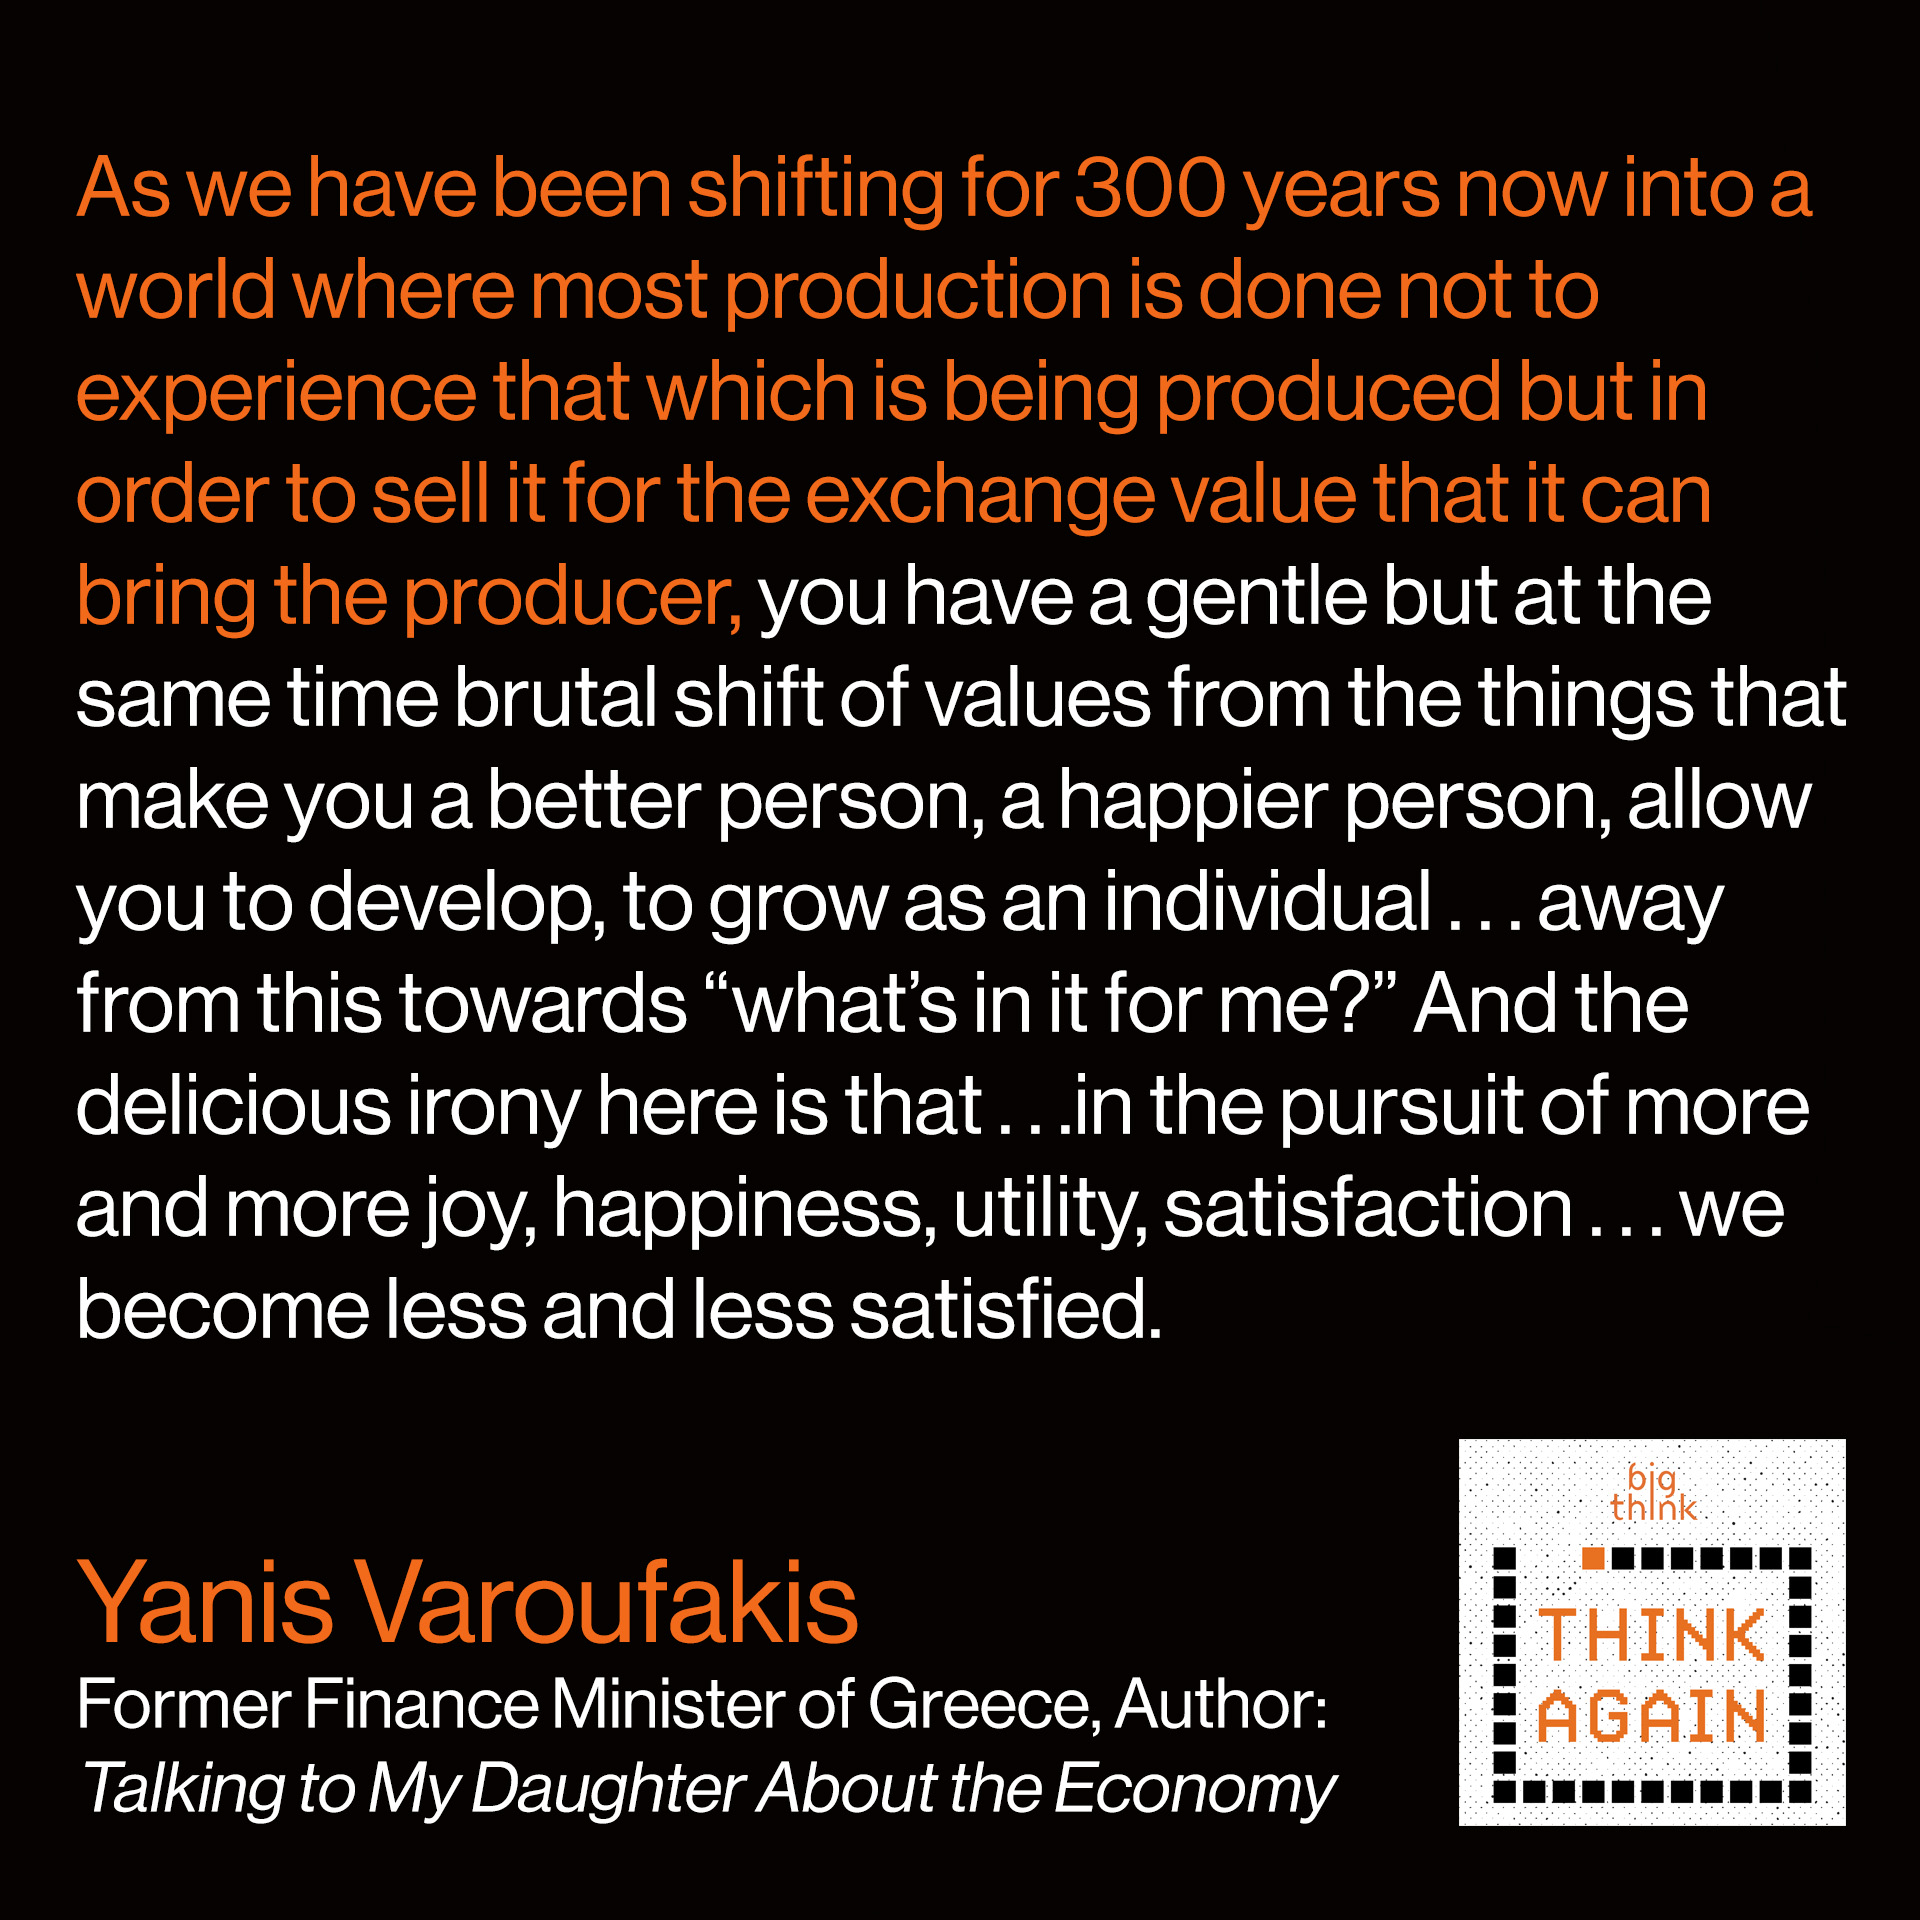 "Yanis Varoufakis quote: As we have been shifting for 300 years now into a world where most production is done not to experience that which is being produced but in order to sell it for the exchange value that it can bring the producer, you have a gentle but at the same time brutal shift in terms of values from the things that make you a better person, a happier person, allow you to develop, to grow as an individual…away from this towards ""what's in it for me?"" And the delicious irony here is that…in the pursuit of more and more joy, happiness, utility, satisfaction…we become less and less satisfied. We end up with an economy which can only be described as ""joyless"" in the pursuit of happiness."